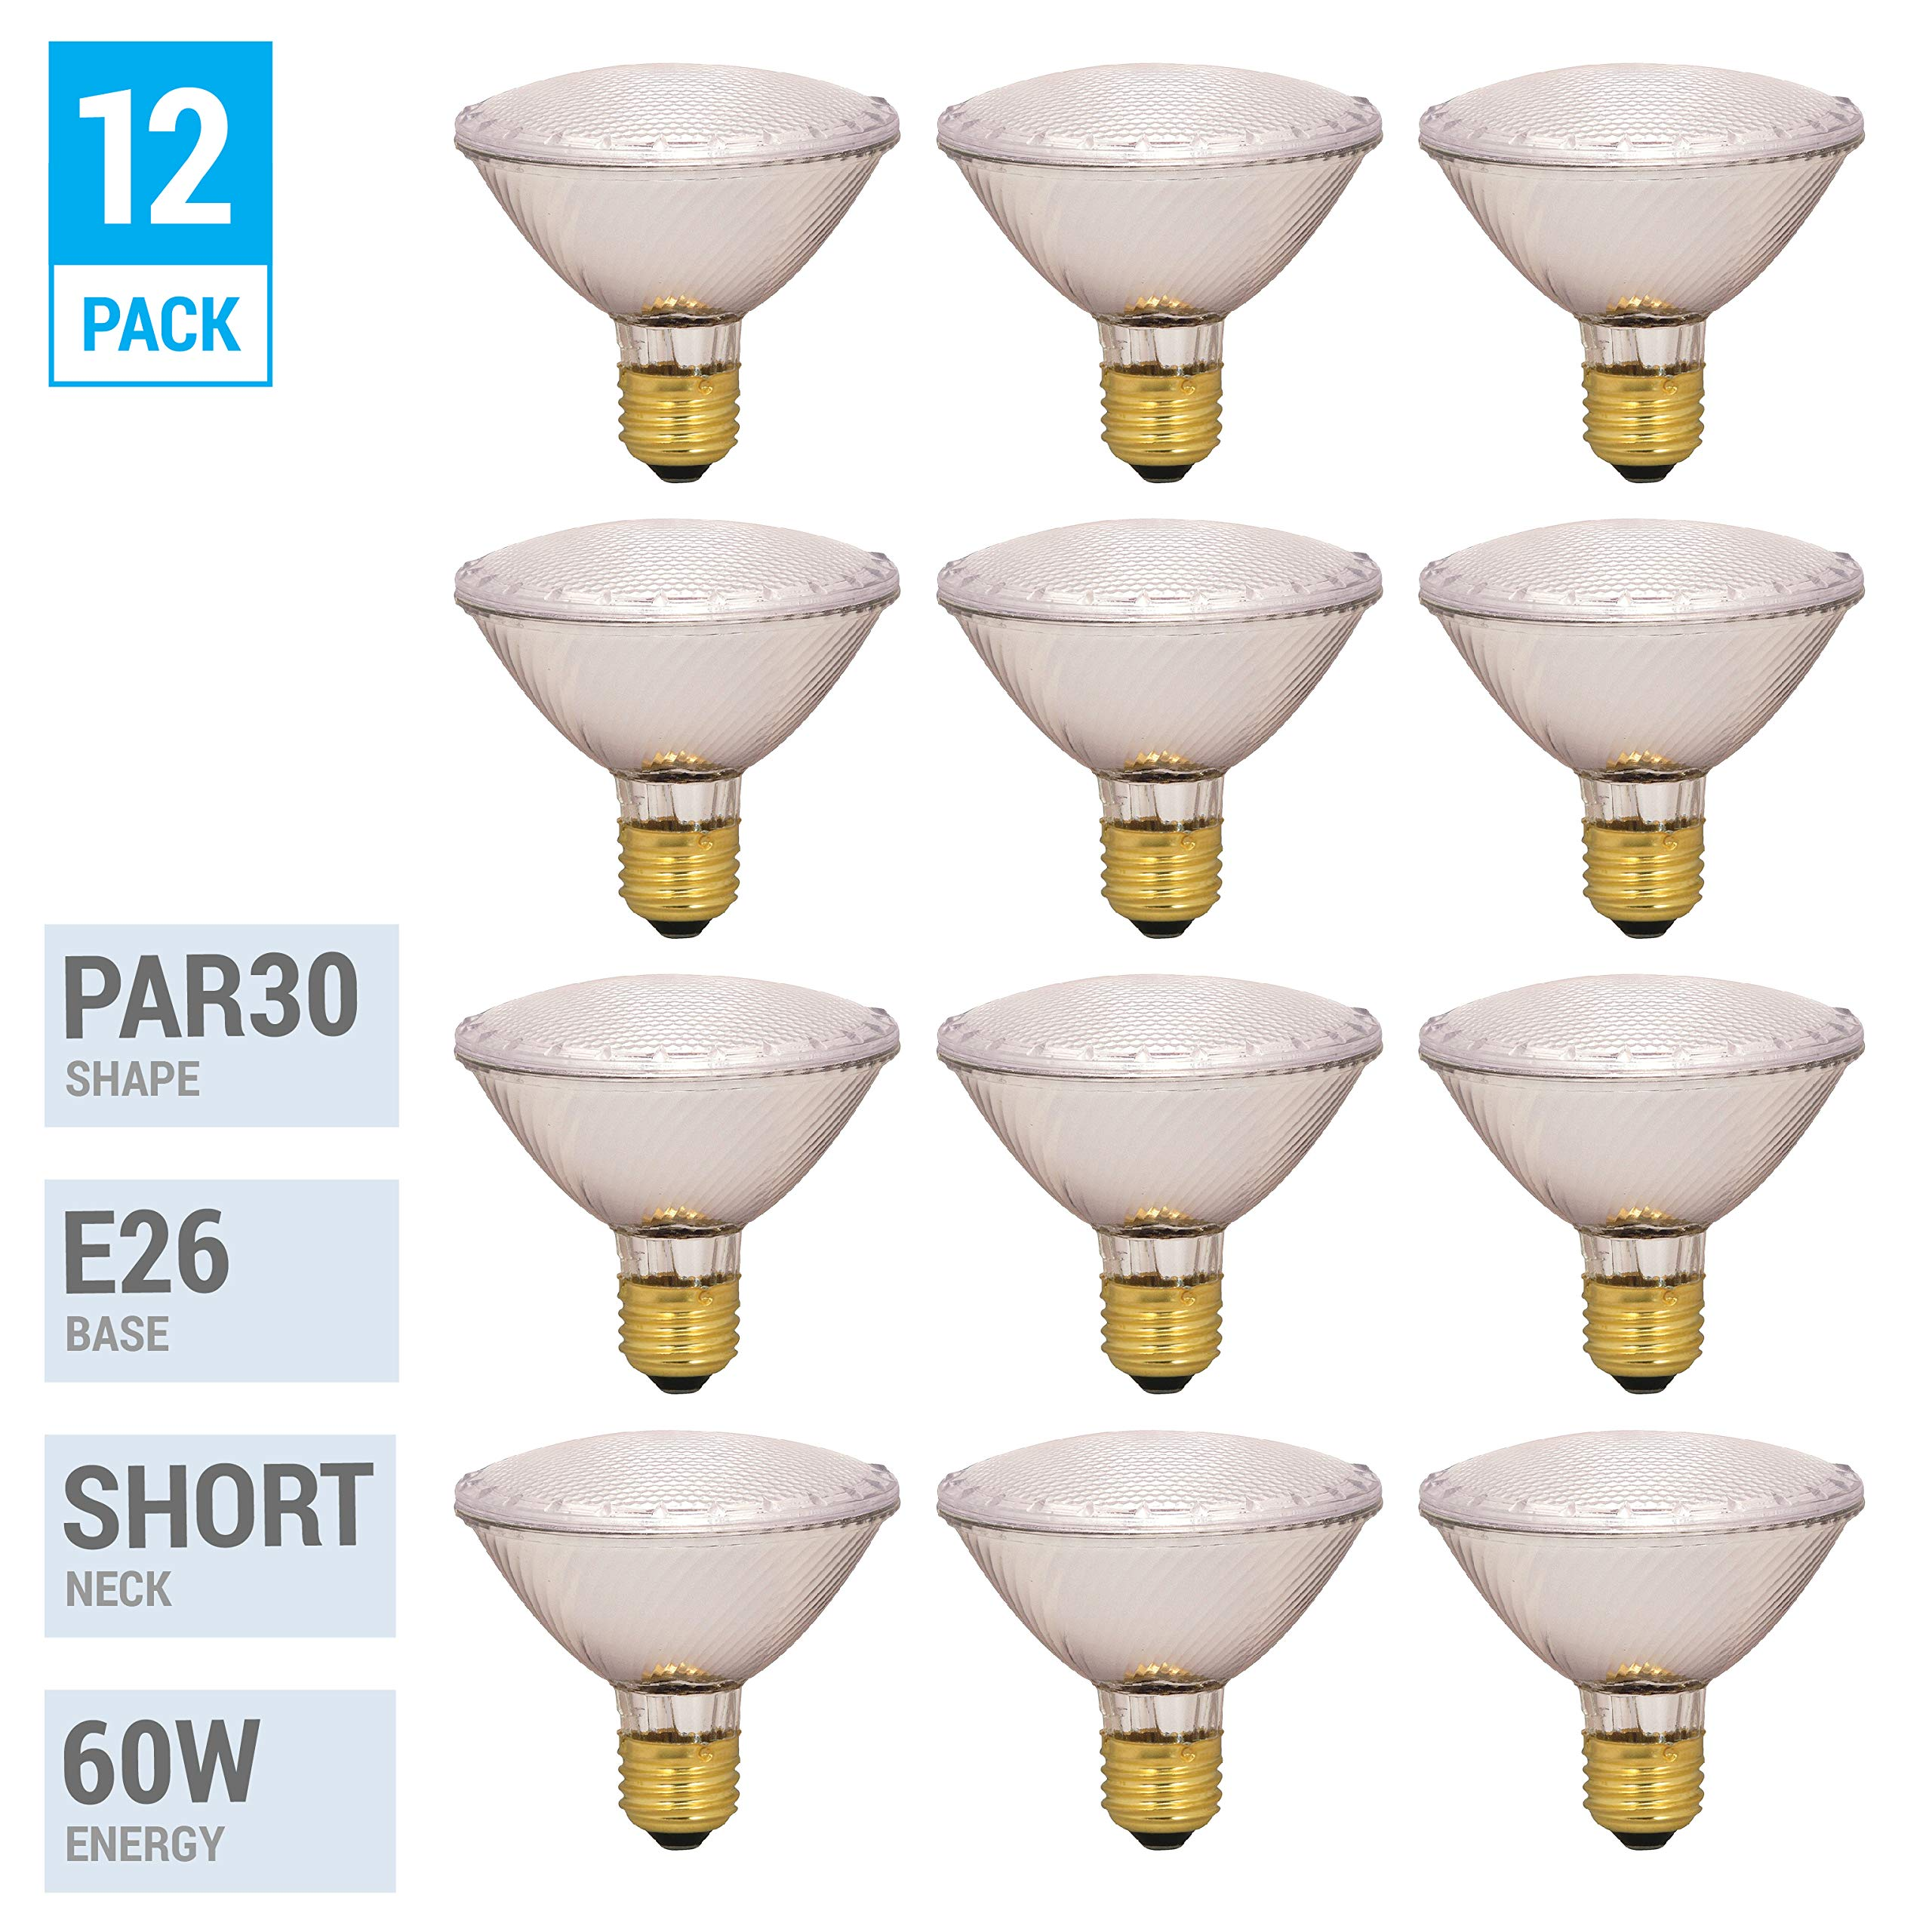 60PAR30/FL 120V - 60 Watt High Output (75W Replacement) PAR30 Flood Short Neck - 120 Volt Halogen Light Bulbs (12 Pack)